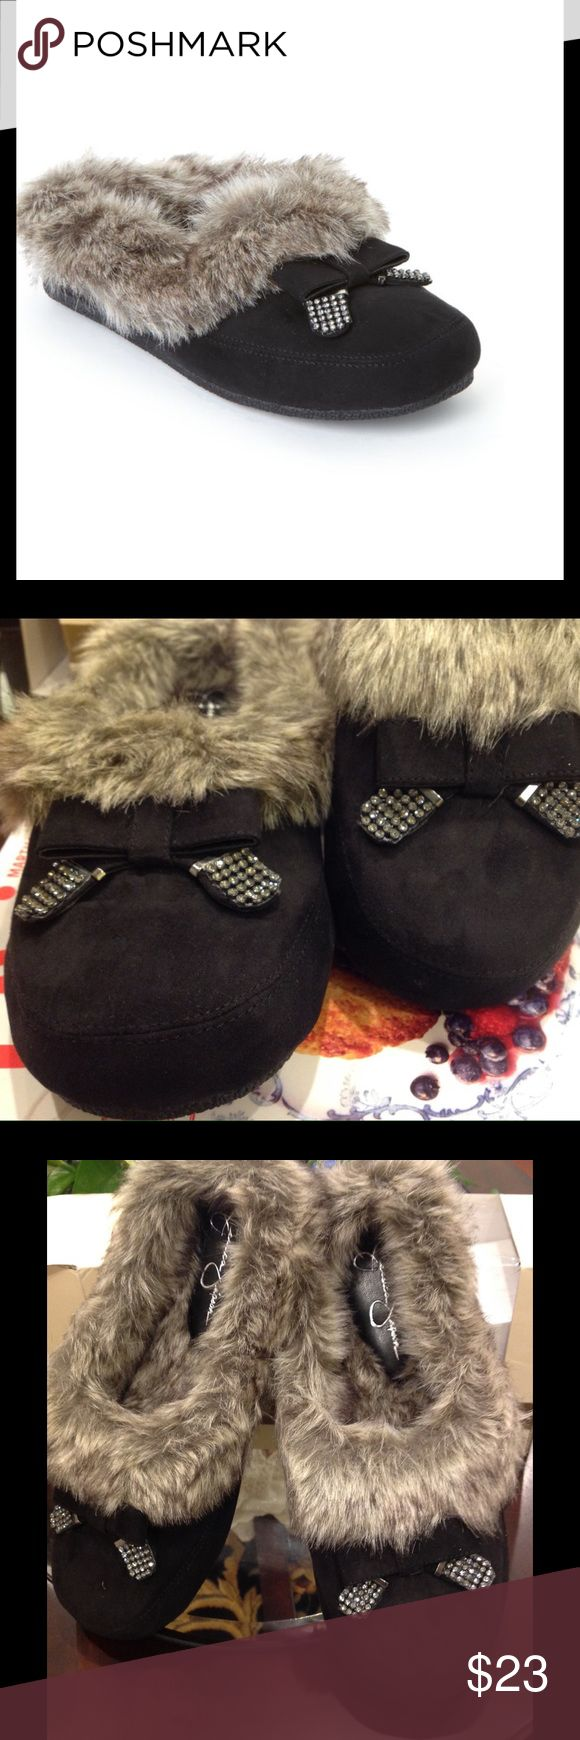 JESSICA SIMPSON SLIPPERS Super cute and plush slippers with non skid bottoms. Material microsuede. Brand new. Still in original box. Jessica Simpson Shoes Slippers